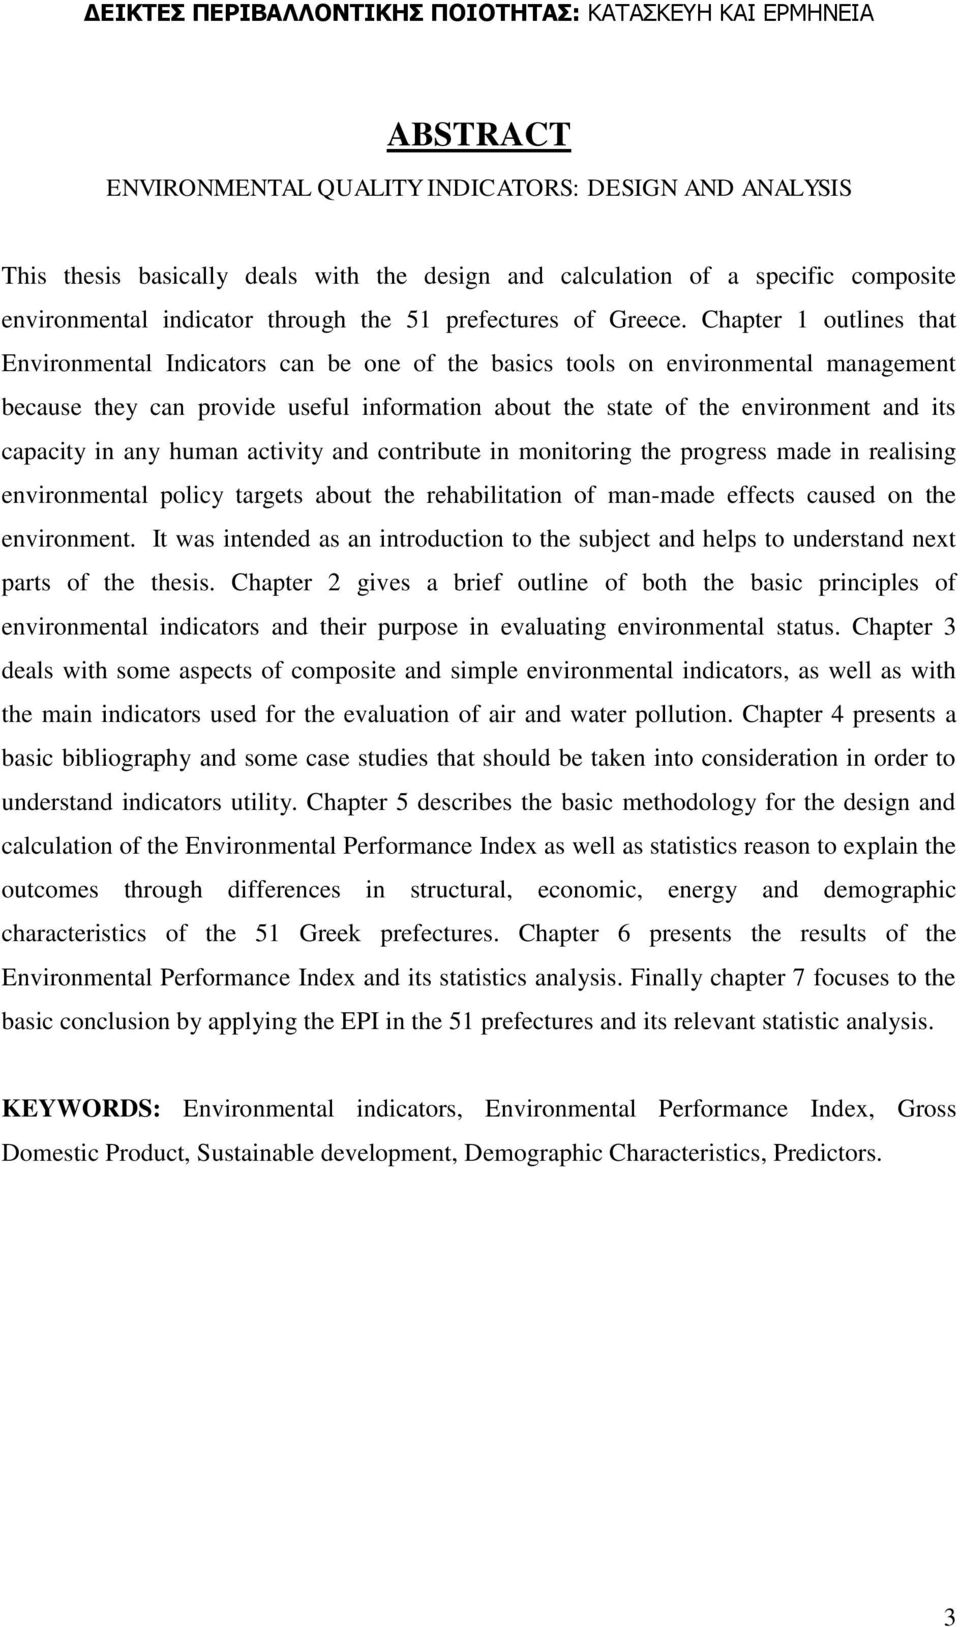 Chapter 1 outlines that Environmental Indicators can be one of the basics tools on environmental management because they can provide useful information about the state of the environment and its